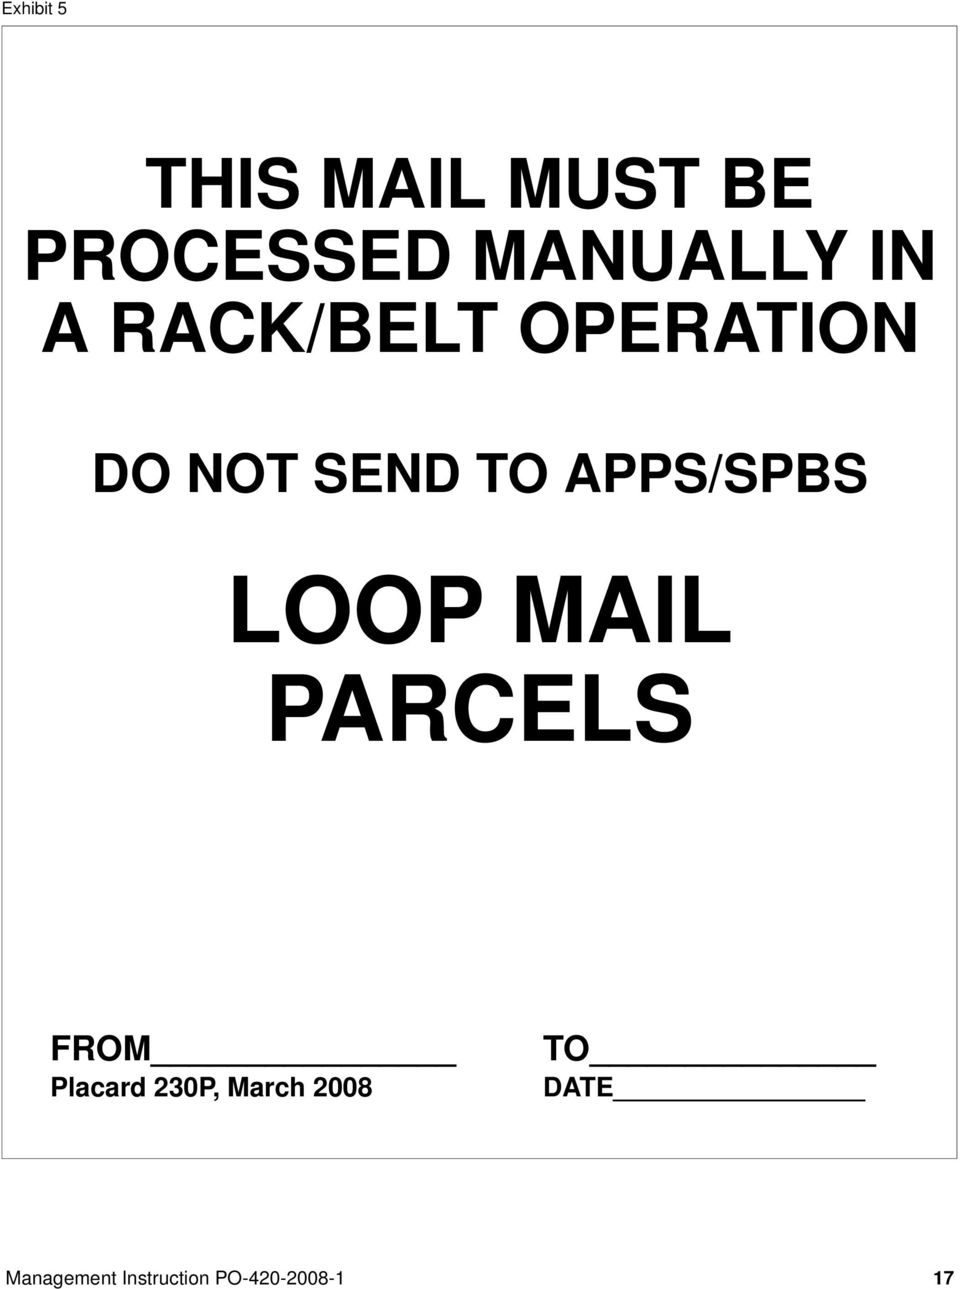 NOT SEND TO APPS/SPBS LOOP MAIL